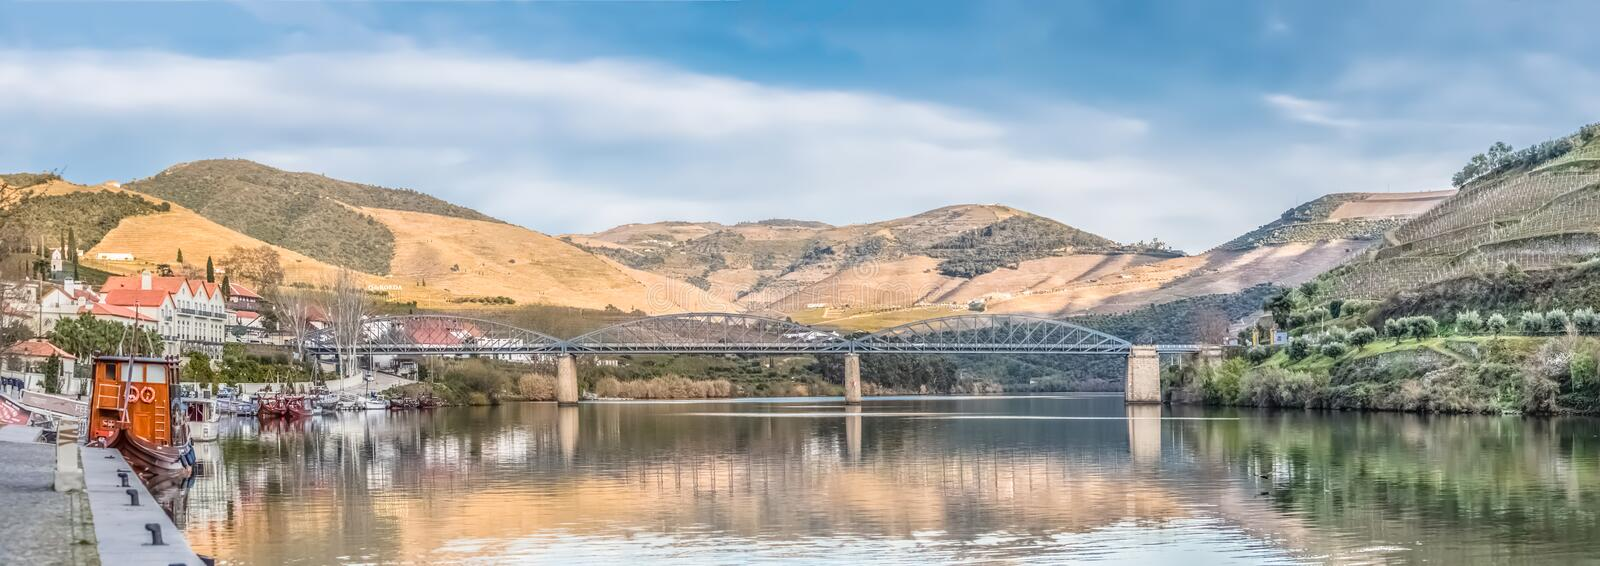 Ultra panoramic view of river Douro with downtown of Pinhao and marina with recreational boats and leisure for tourism, Port wine. Pinhao / Portugal - 04 16 2019 royalty free stock photo